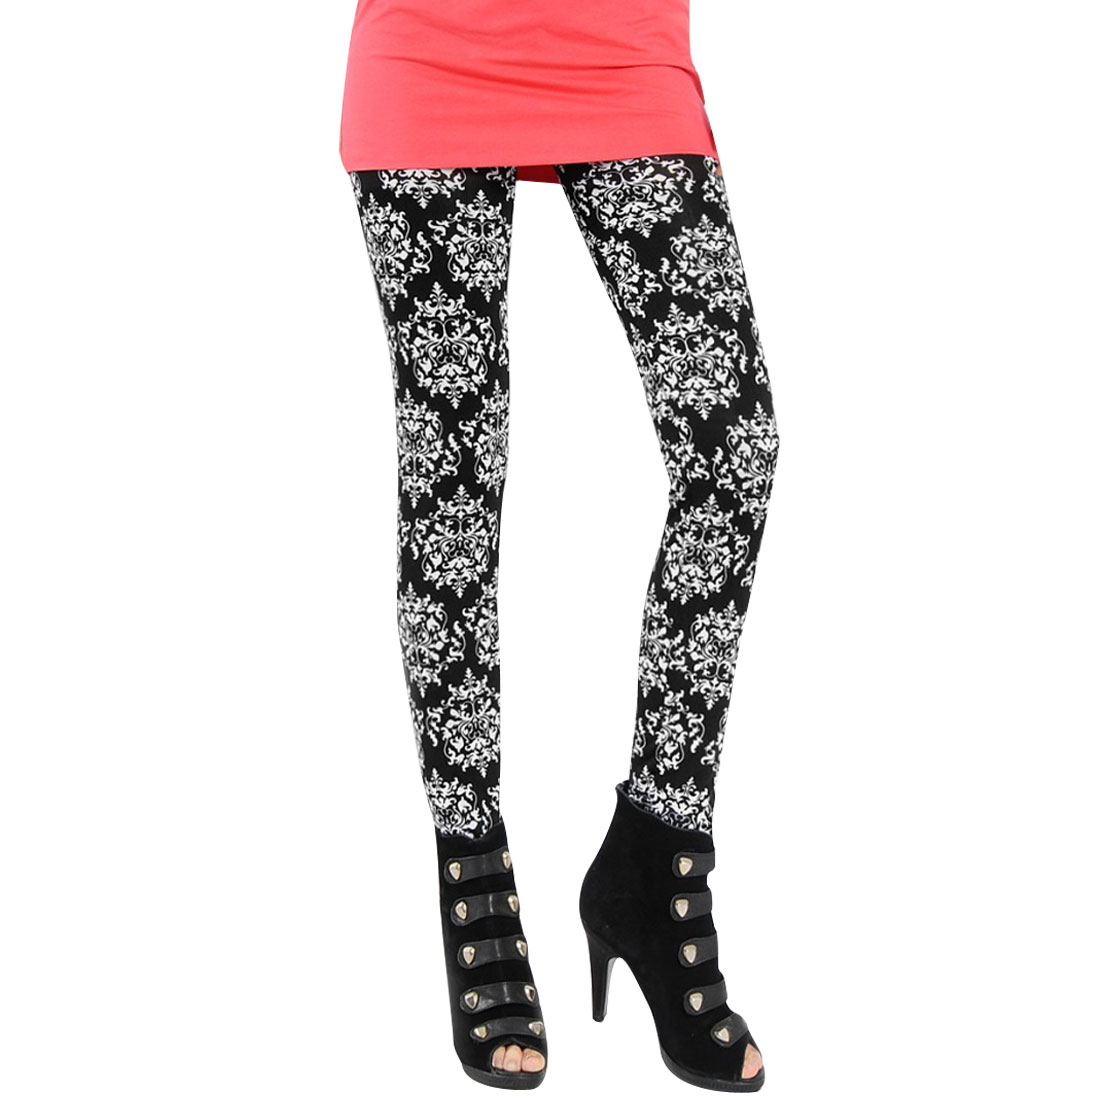 Ladies Stretchy Waist Floral Pattern Color Block Stylish Legging XS Black